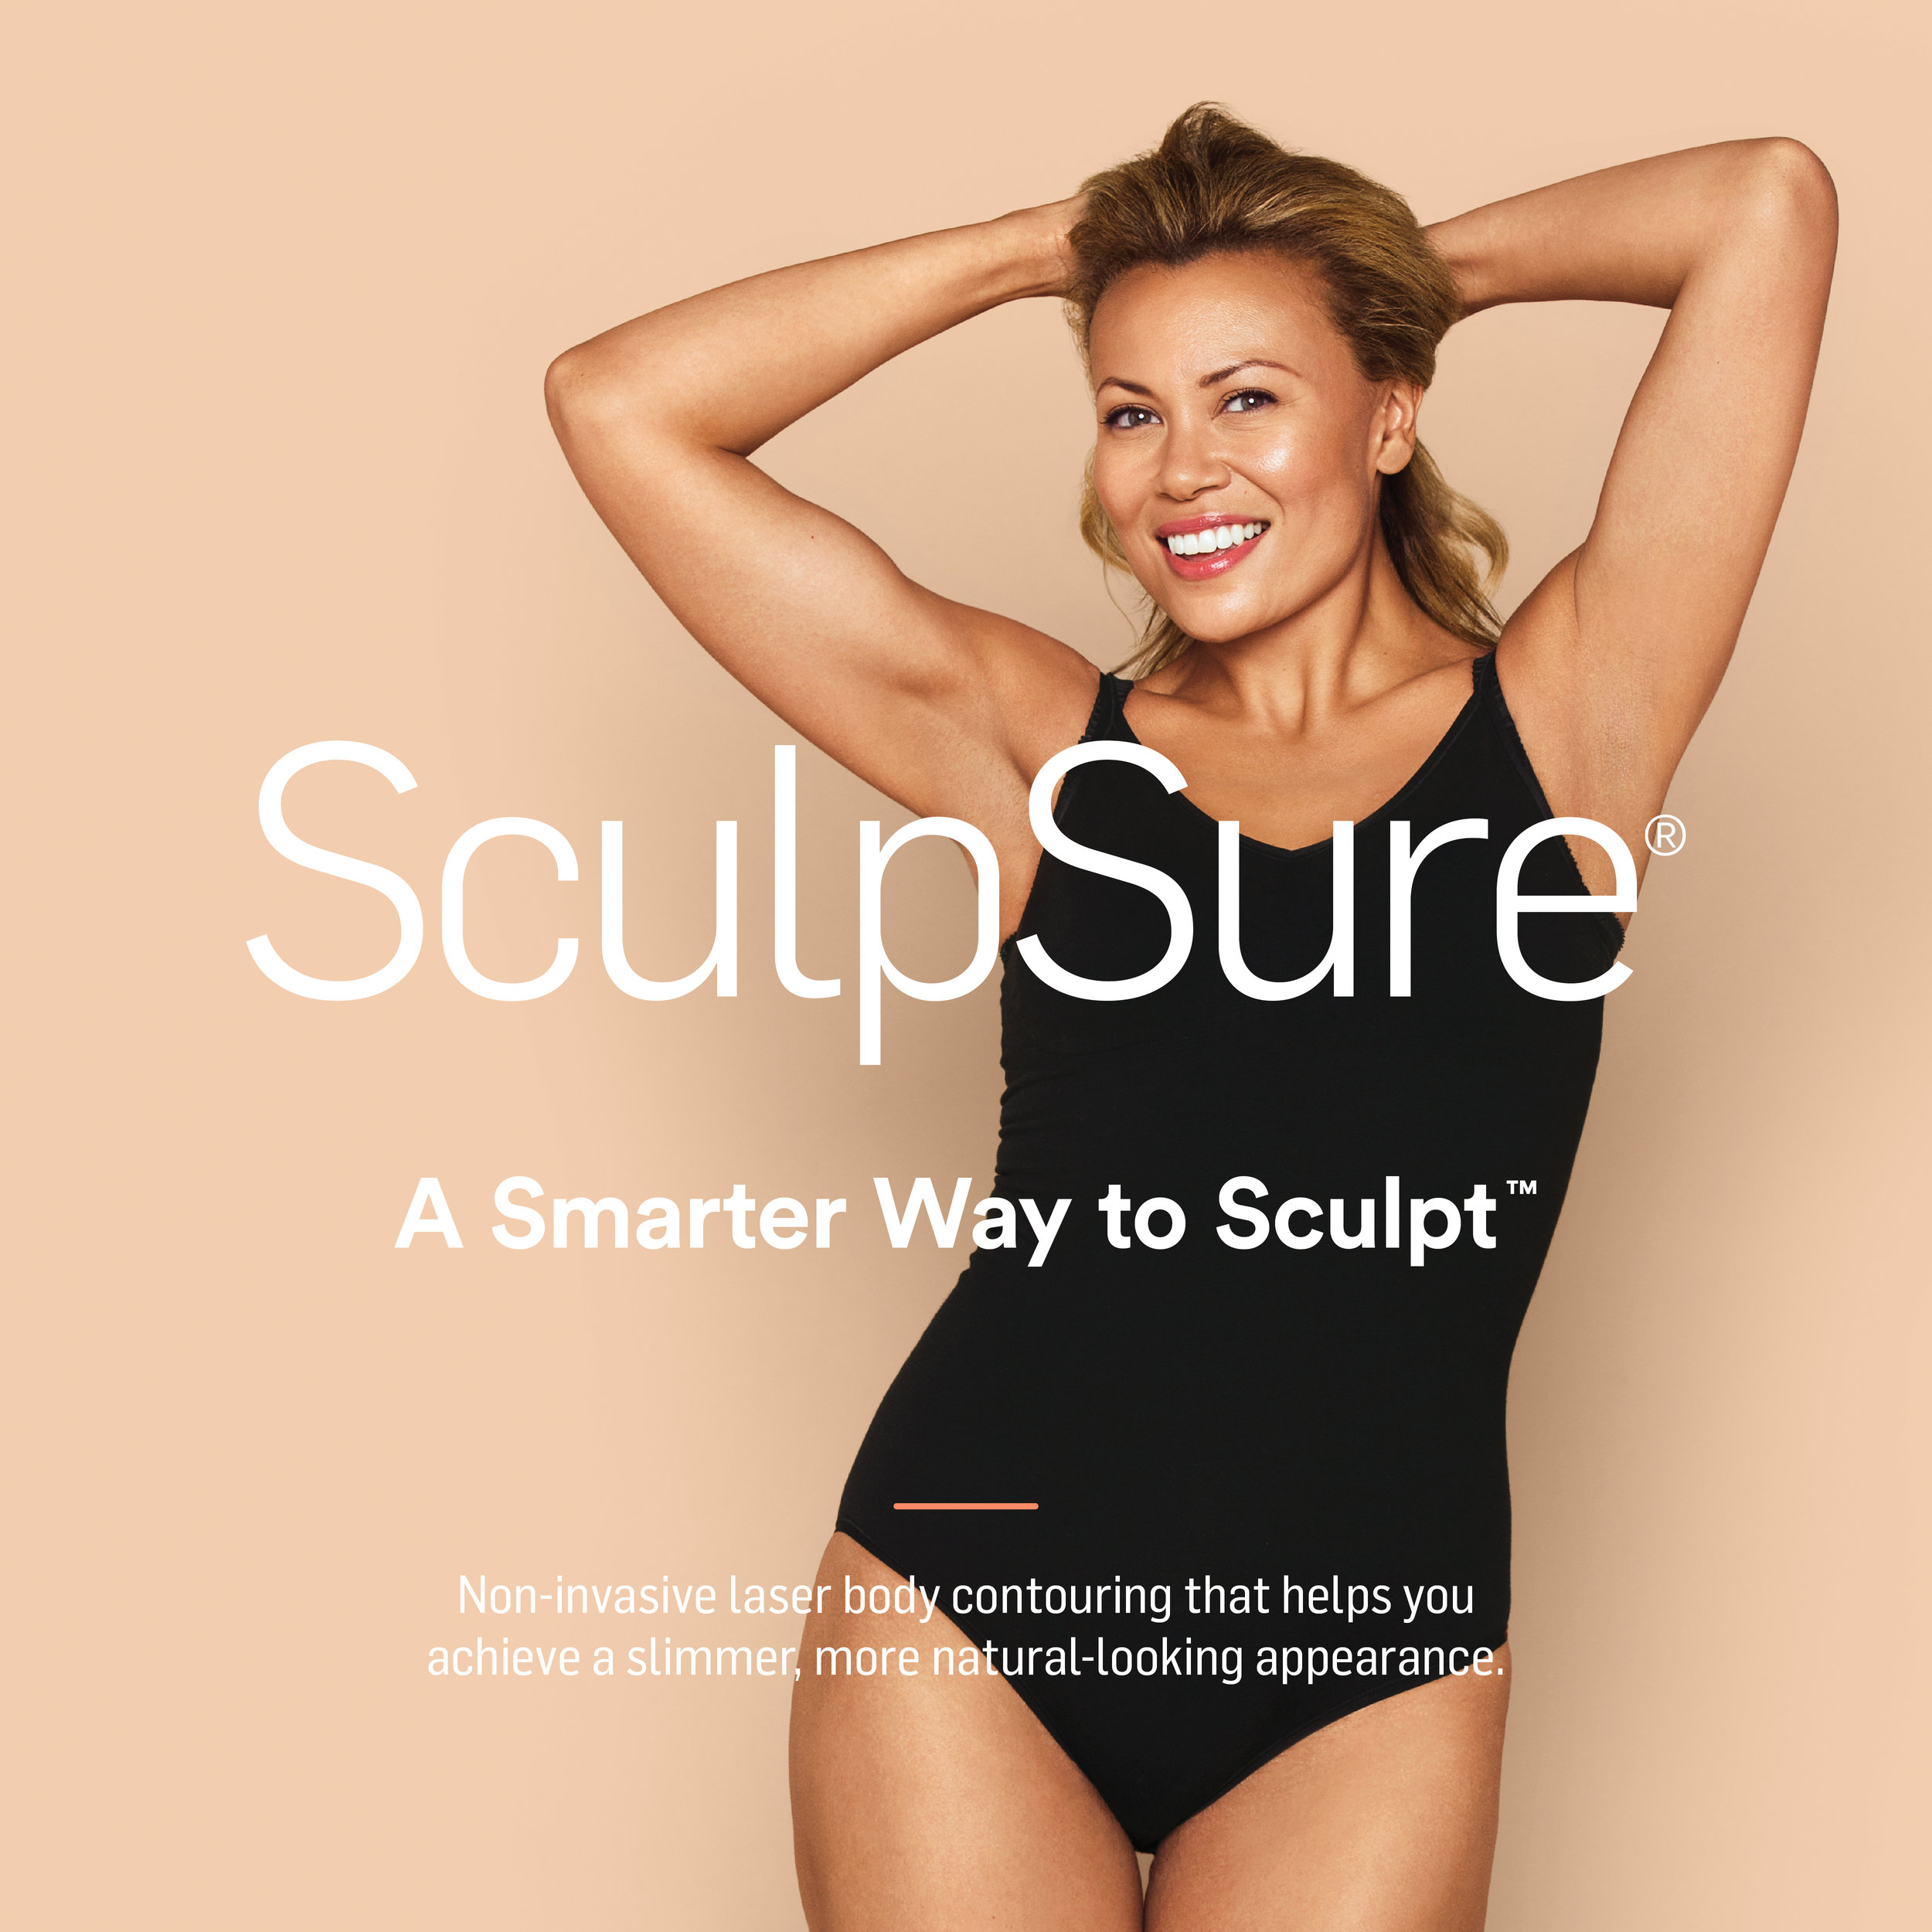 SculpSure-Social-Image---Smarter-Way-to-Sculpt-.jpg